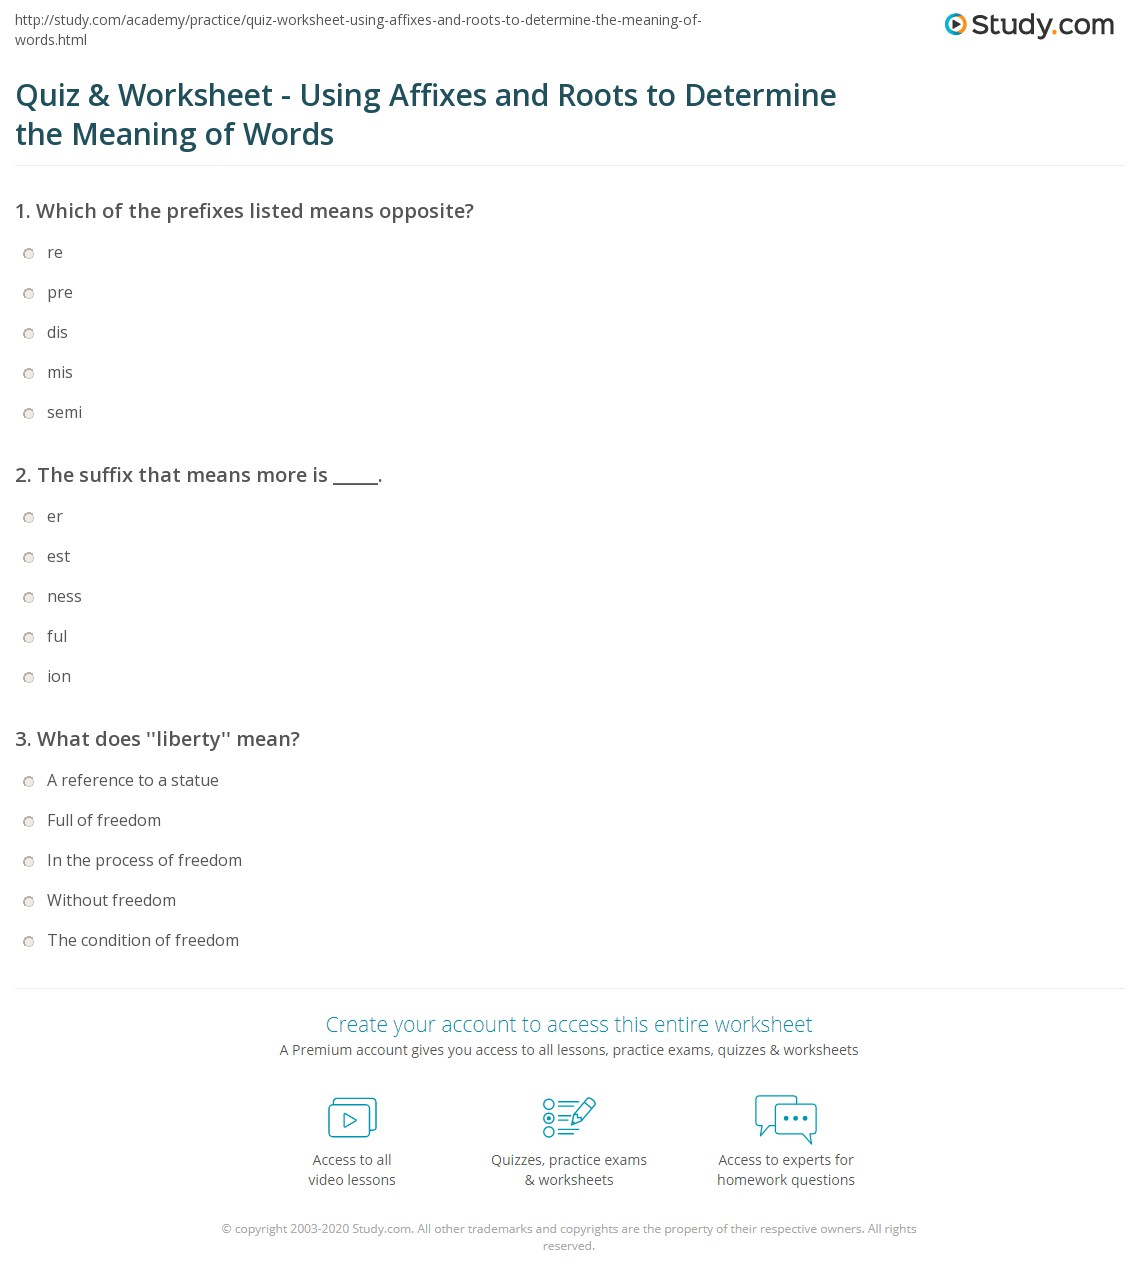 worksheet Est Suffix Worksheet suffix er worksheets free library download and print quiz w ksheet us g ffixes nd roots to determ e